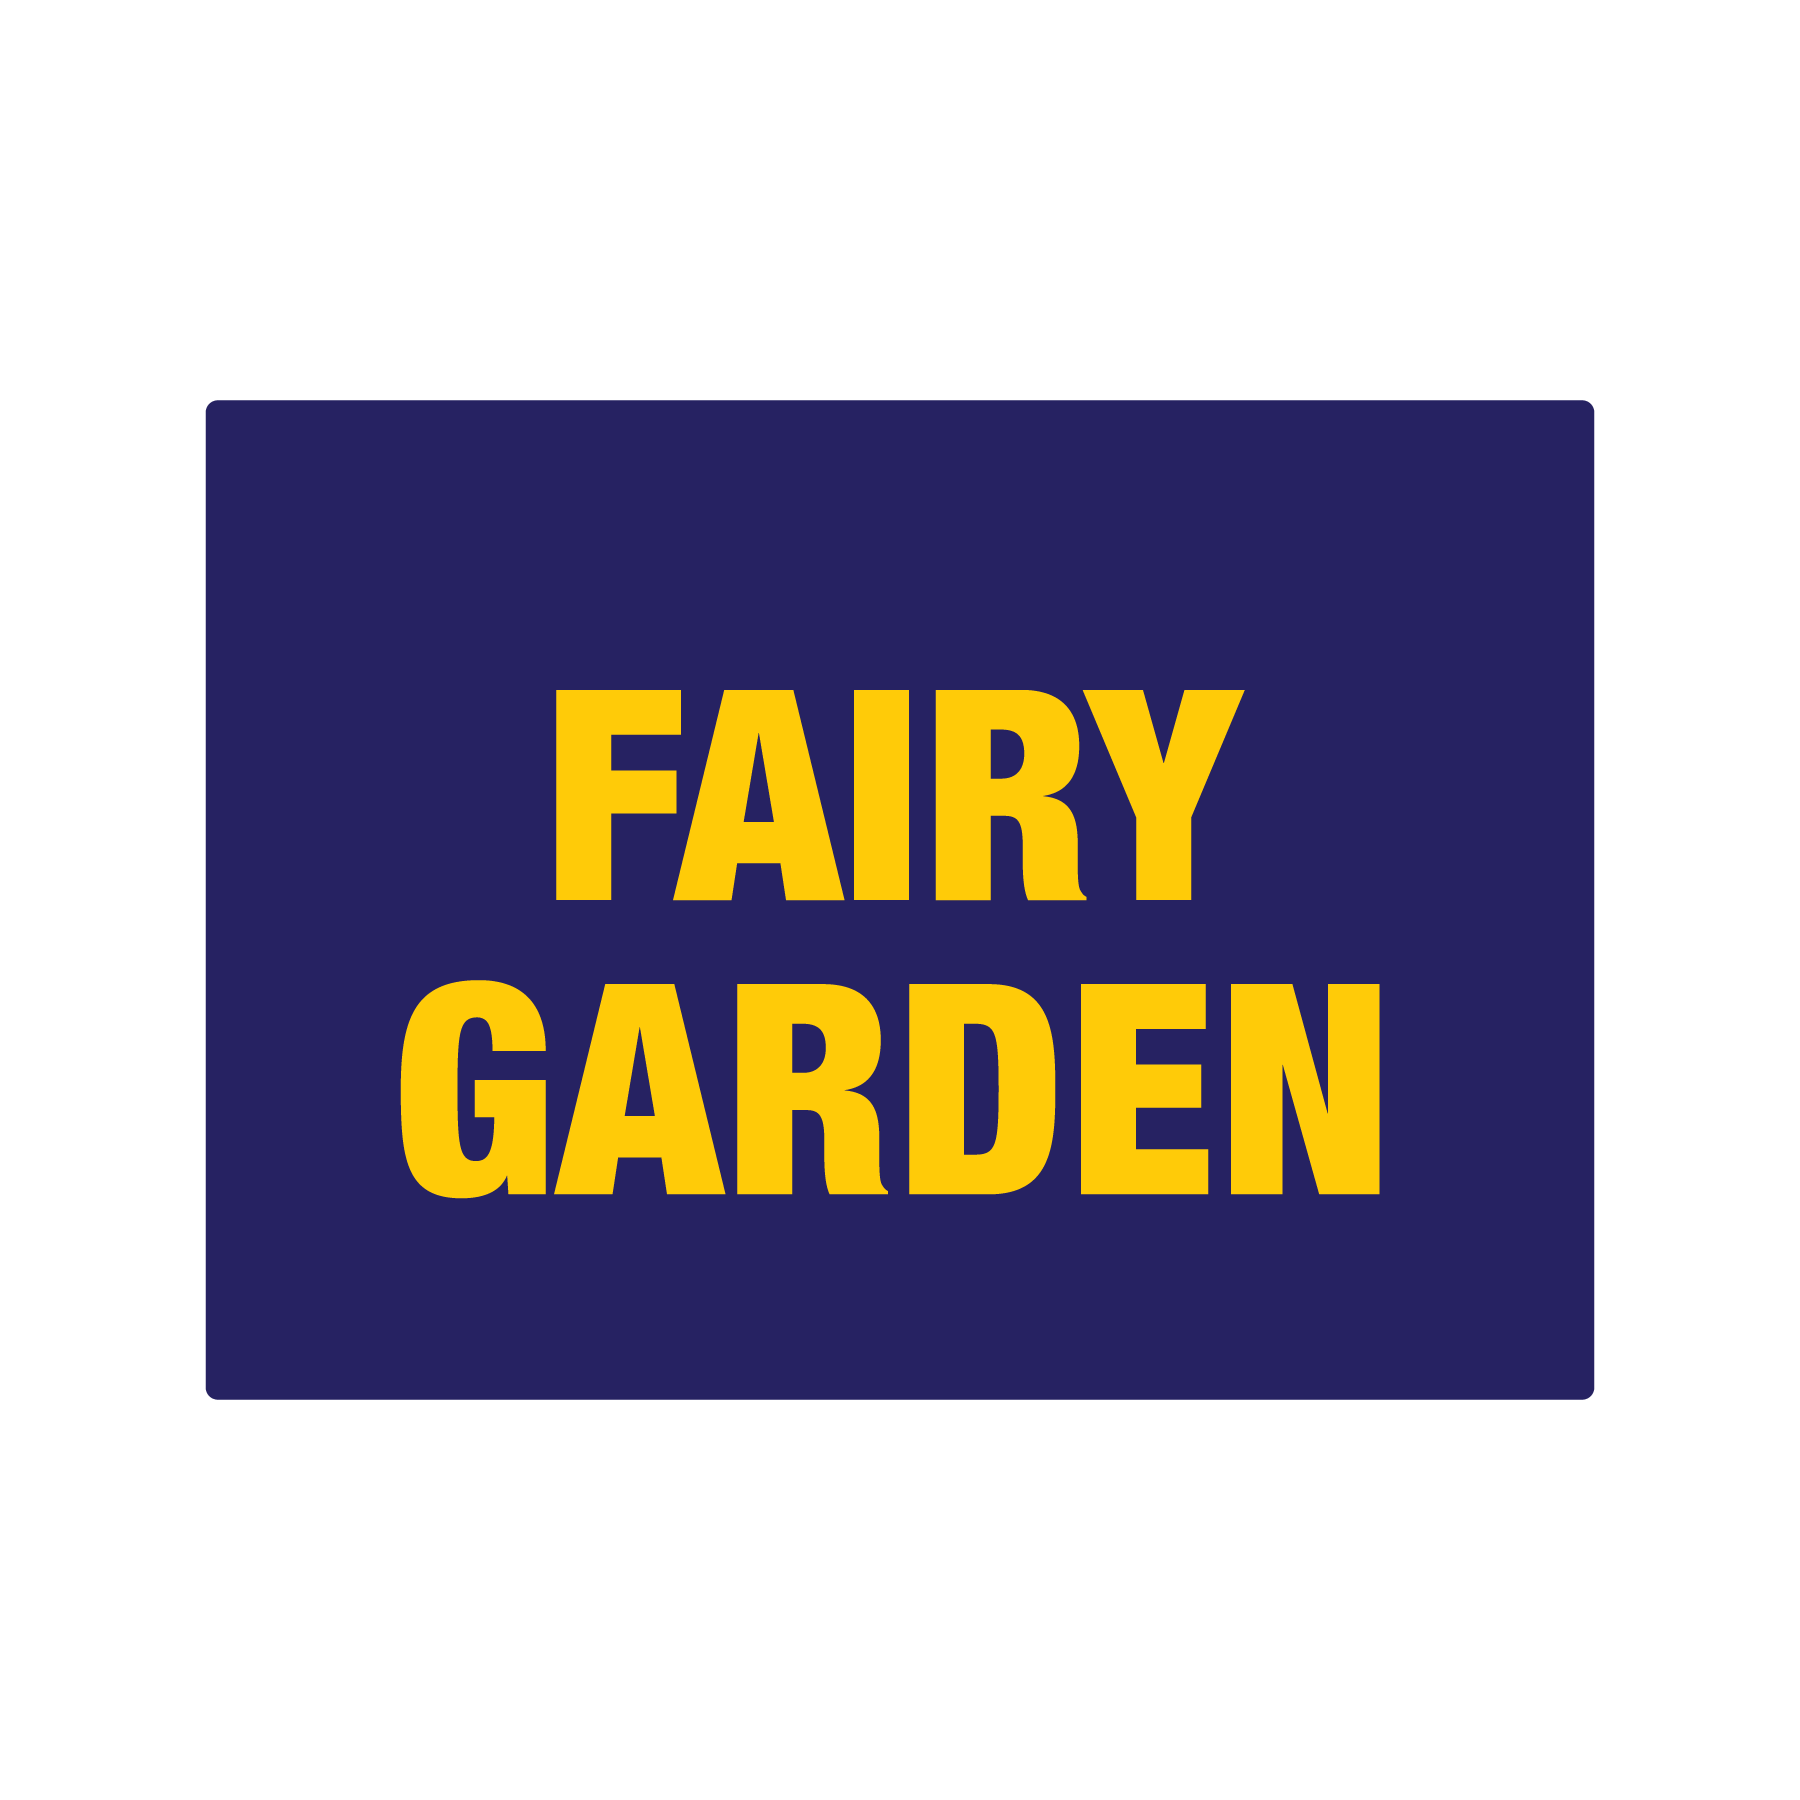 event-landing-page-buttons-fairy-garden.png